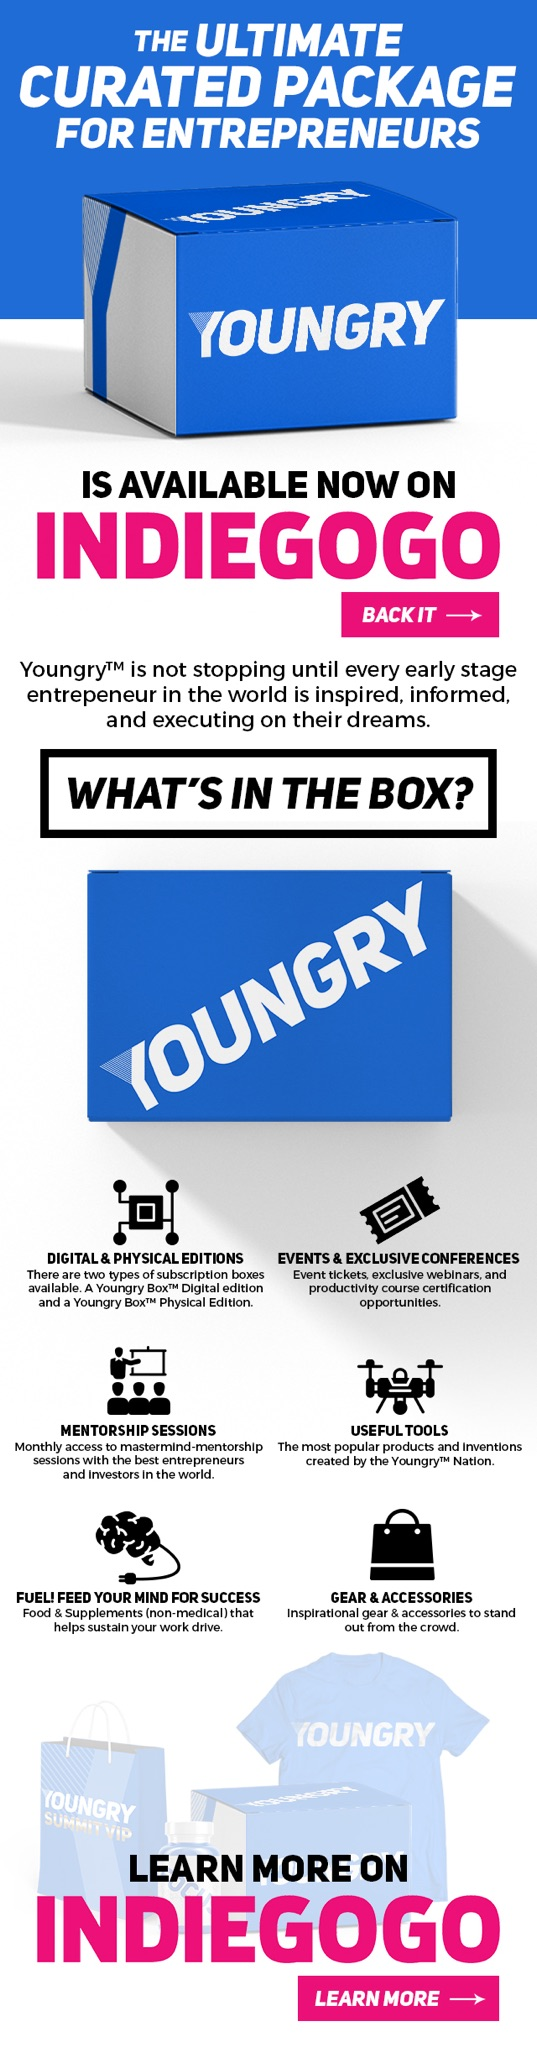 Youngry Box